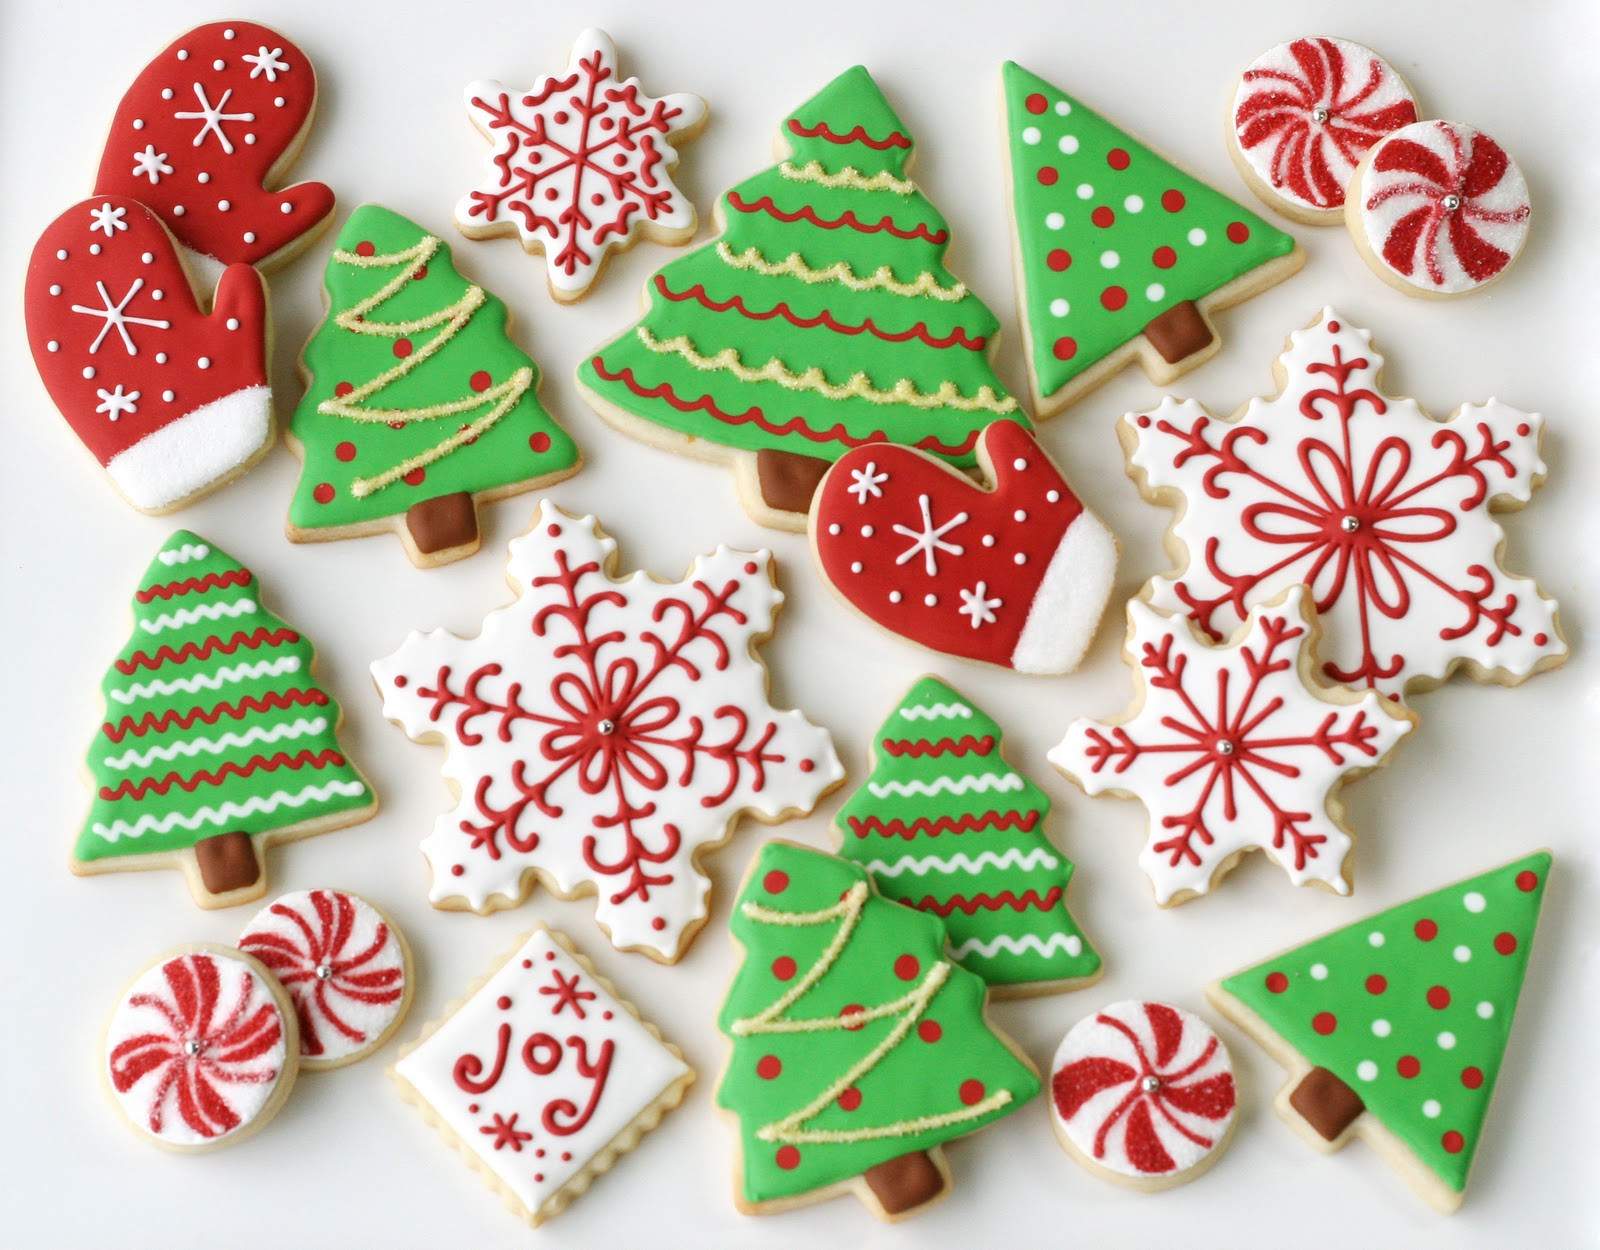 Christmas Themed Cookies  Christmas Cookies Galore Glorious Treats